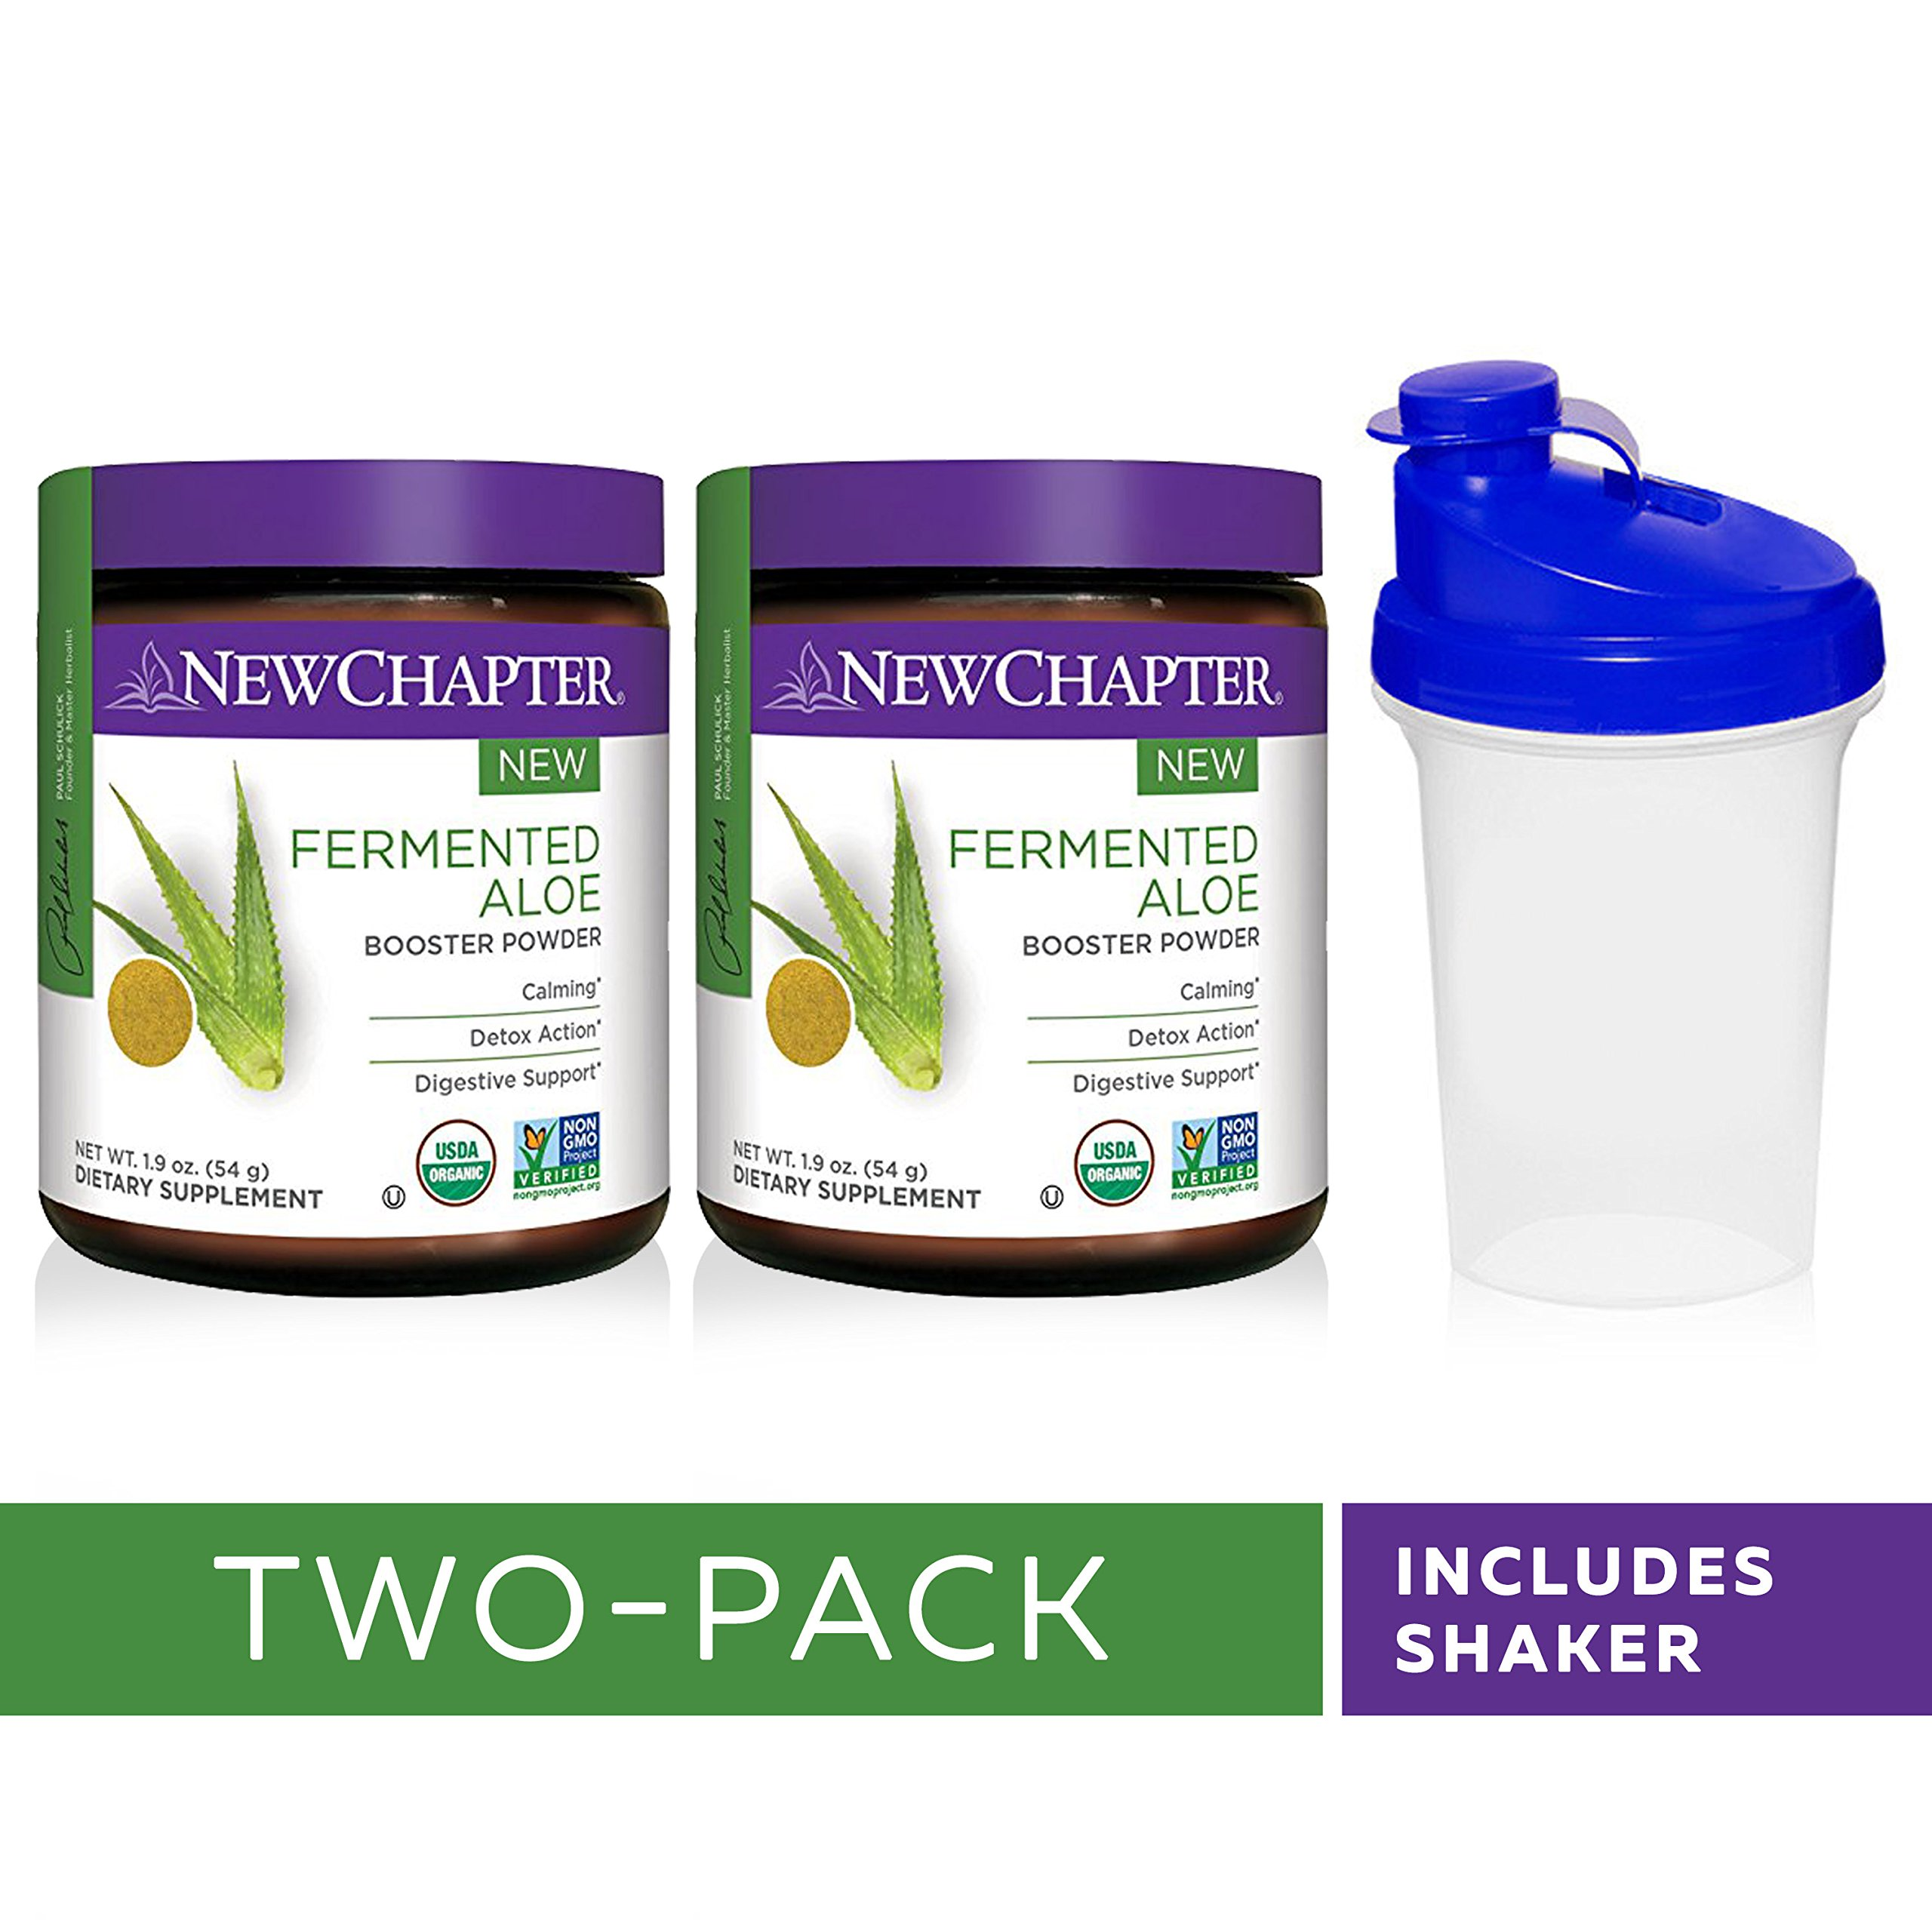 New Chapter Organic Aloe Powder – Fermented Aloe Booster Powder for Calming + Detox Action + Digestive Support – 45 Servings with Shaker Cup (Pack of 2)